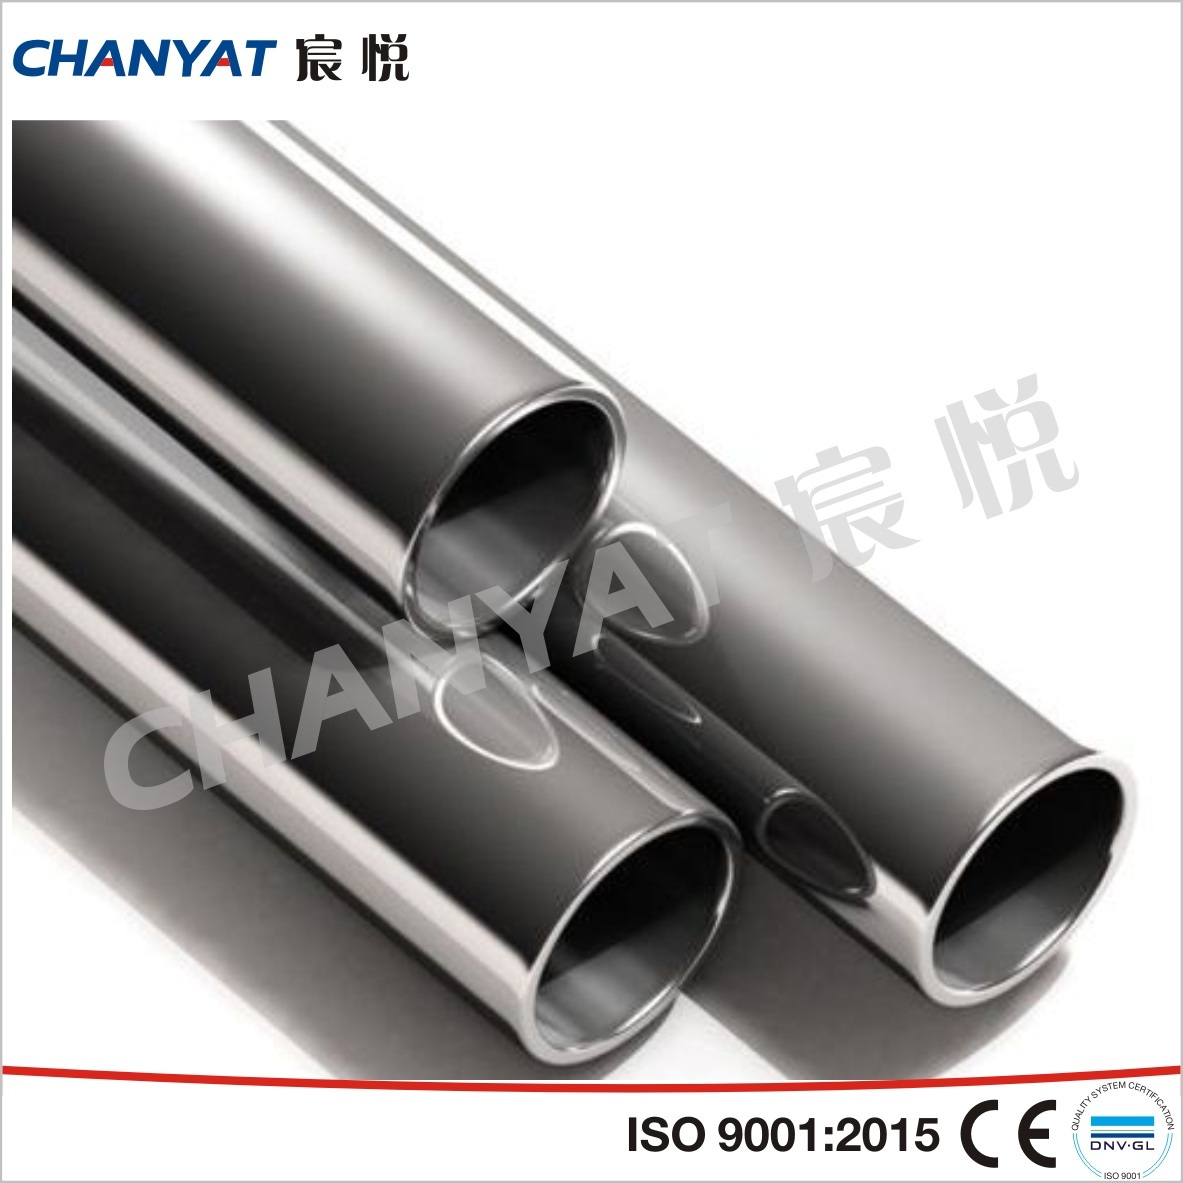 Seamless Nickel Alloy Pipe and Tube (Monel 400, Incoloy 800, Hastelloy C276)